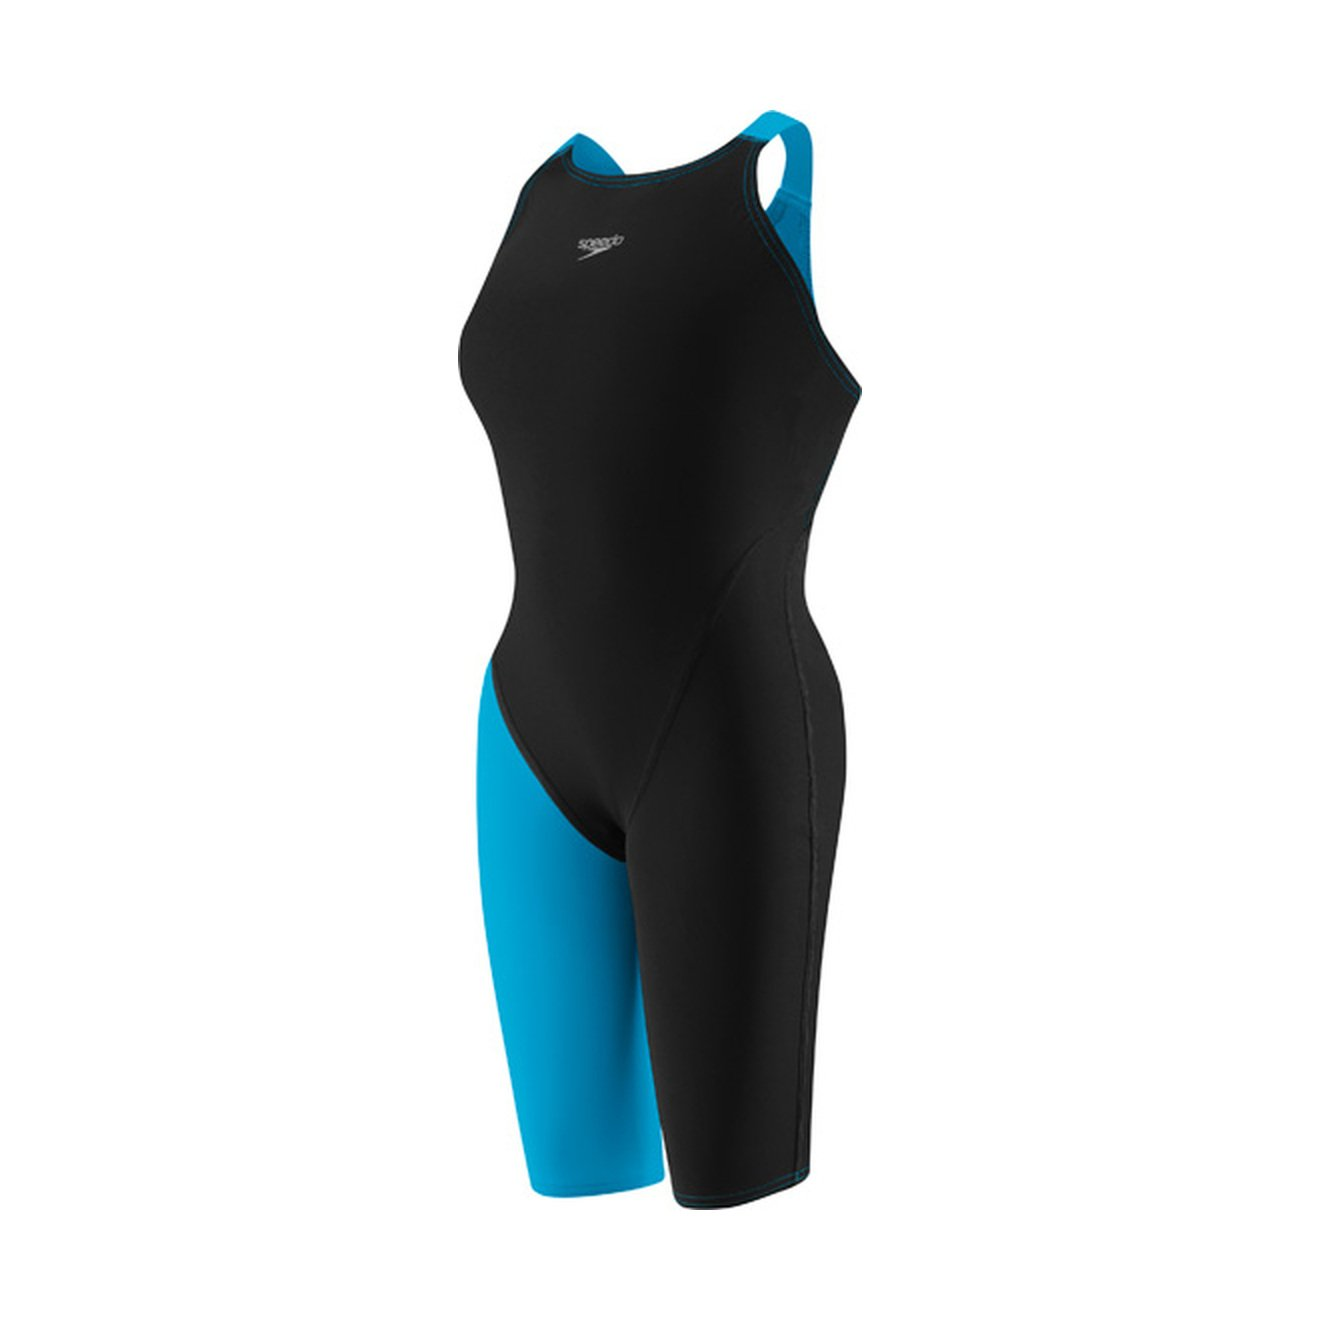 Speedo LZR Racer Pro Recordbreaker Kneeskin with Comfort Strap Female Black/Blue 20